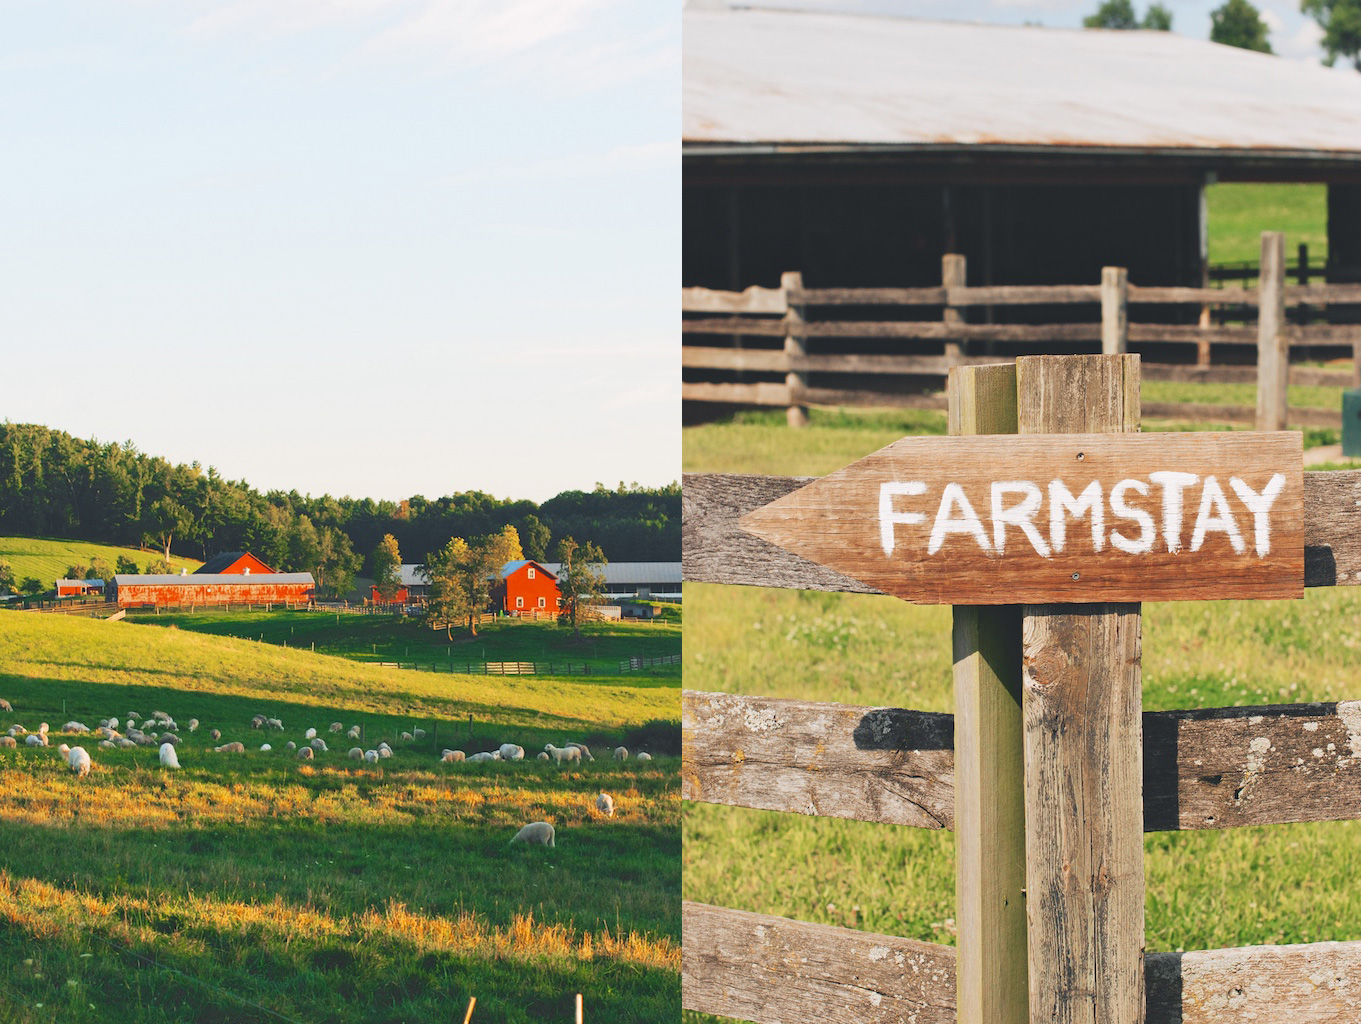 Kinderhook Farm